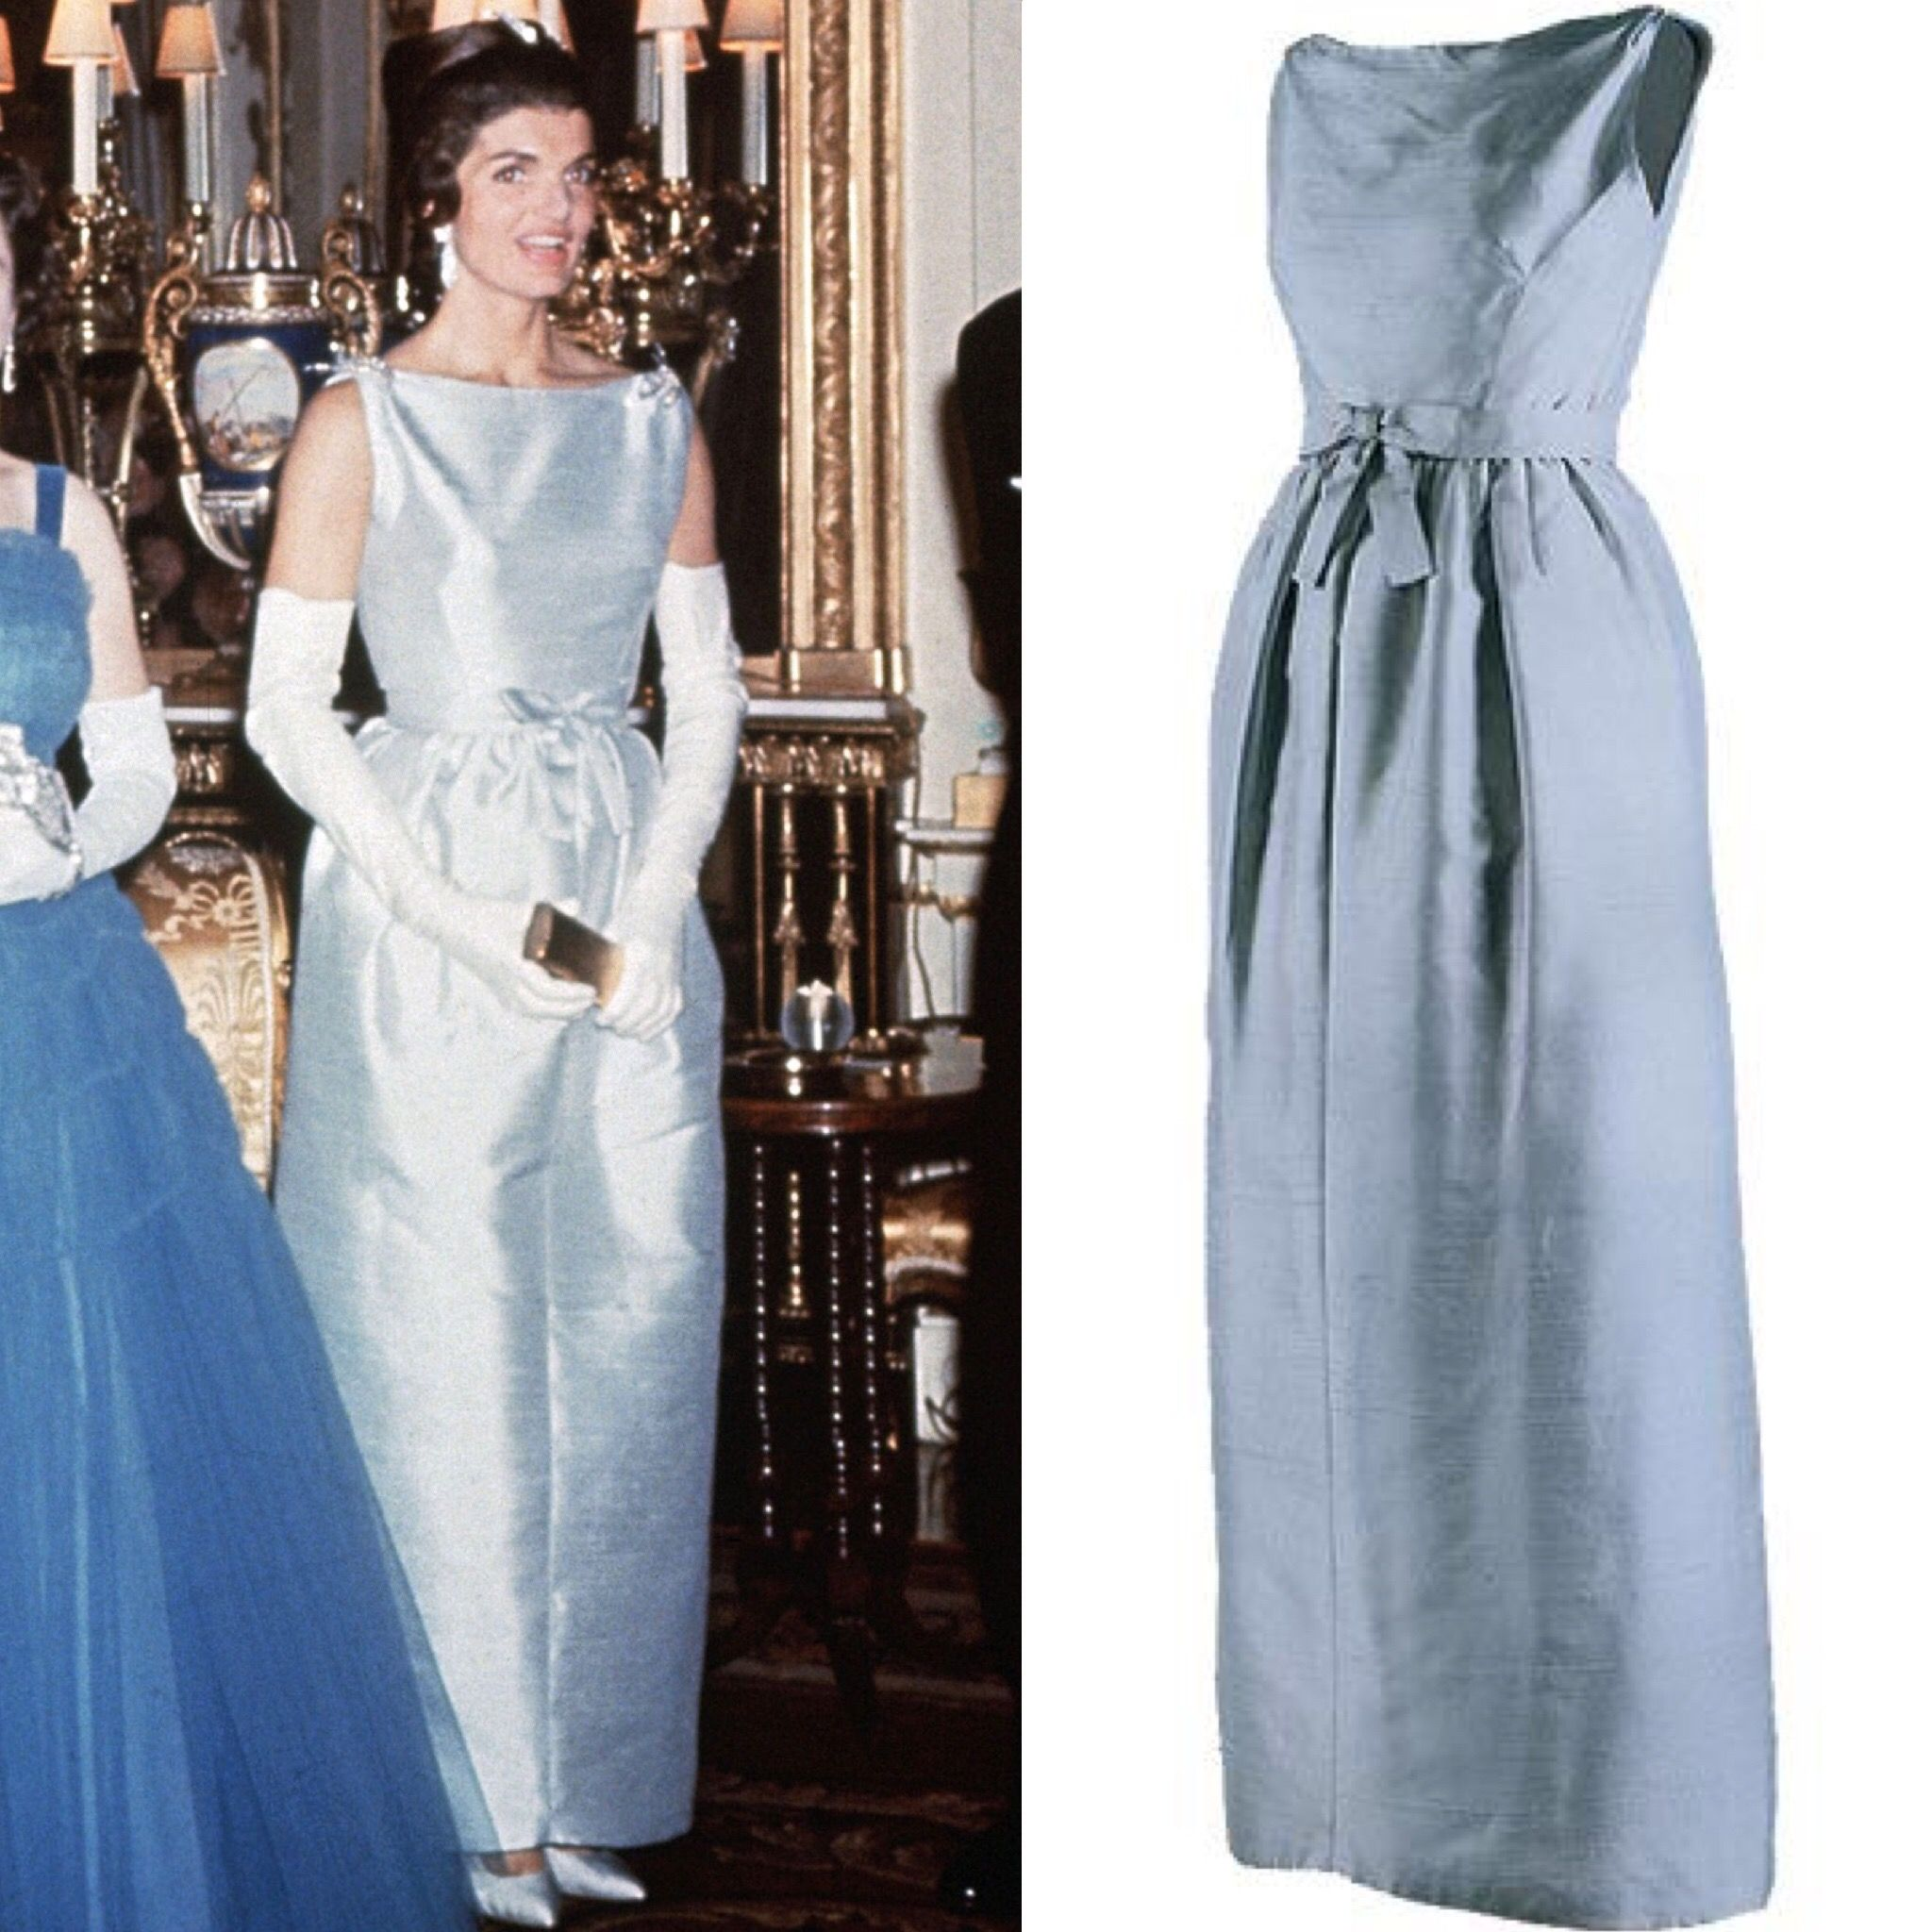 First Lady Jackie Kennedy Wearing A Light Blue Chez Ninon Gown When Visiting Queen Elizabeth Ii At Jacqueline Kennedy Style Jackie Kennedy Style Jackie Kennedy [ 2048 x 2048 Pixel ]